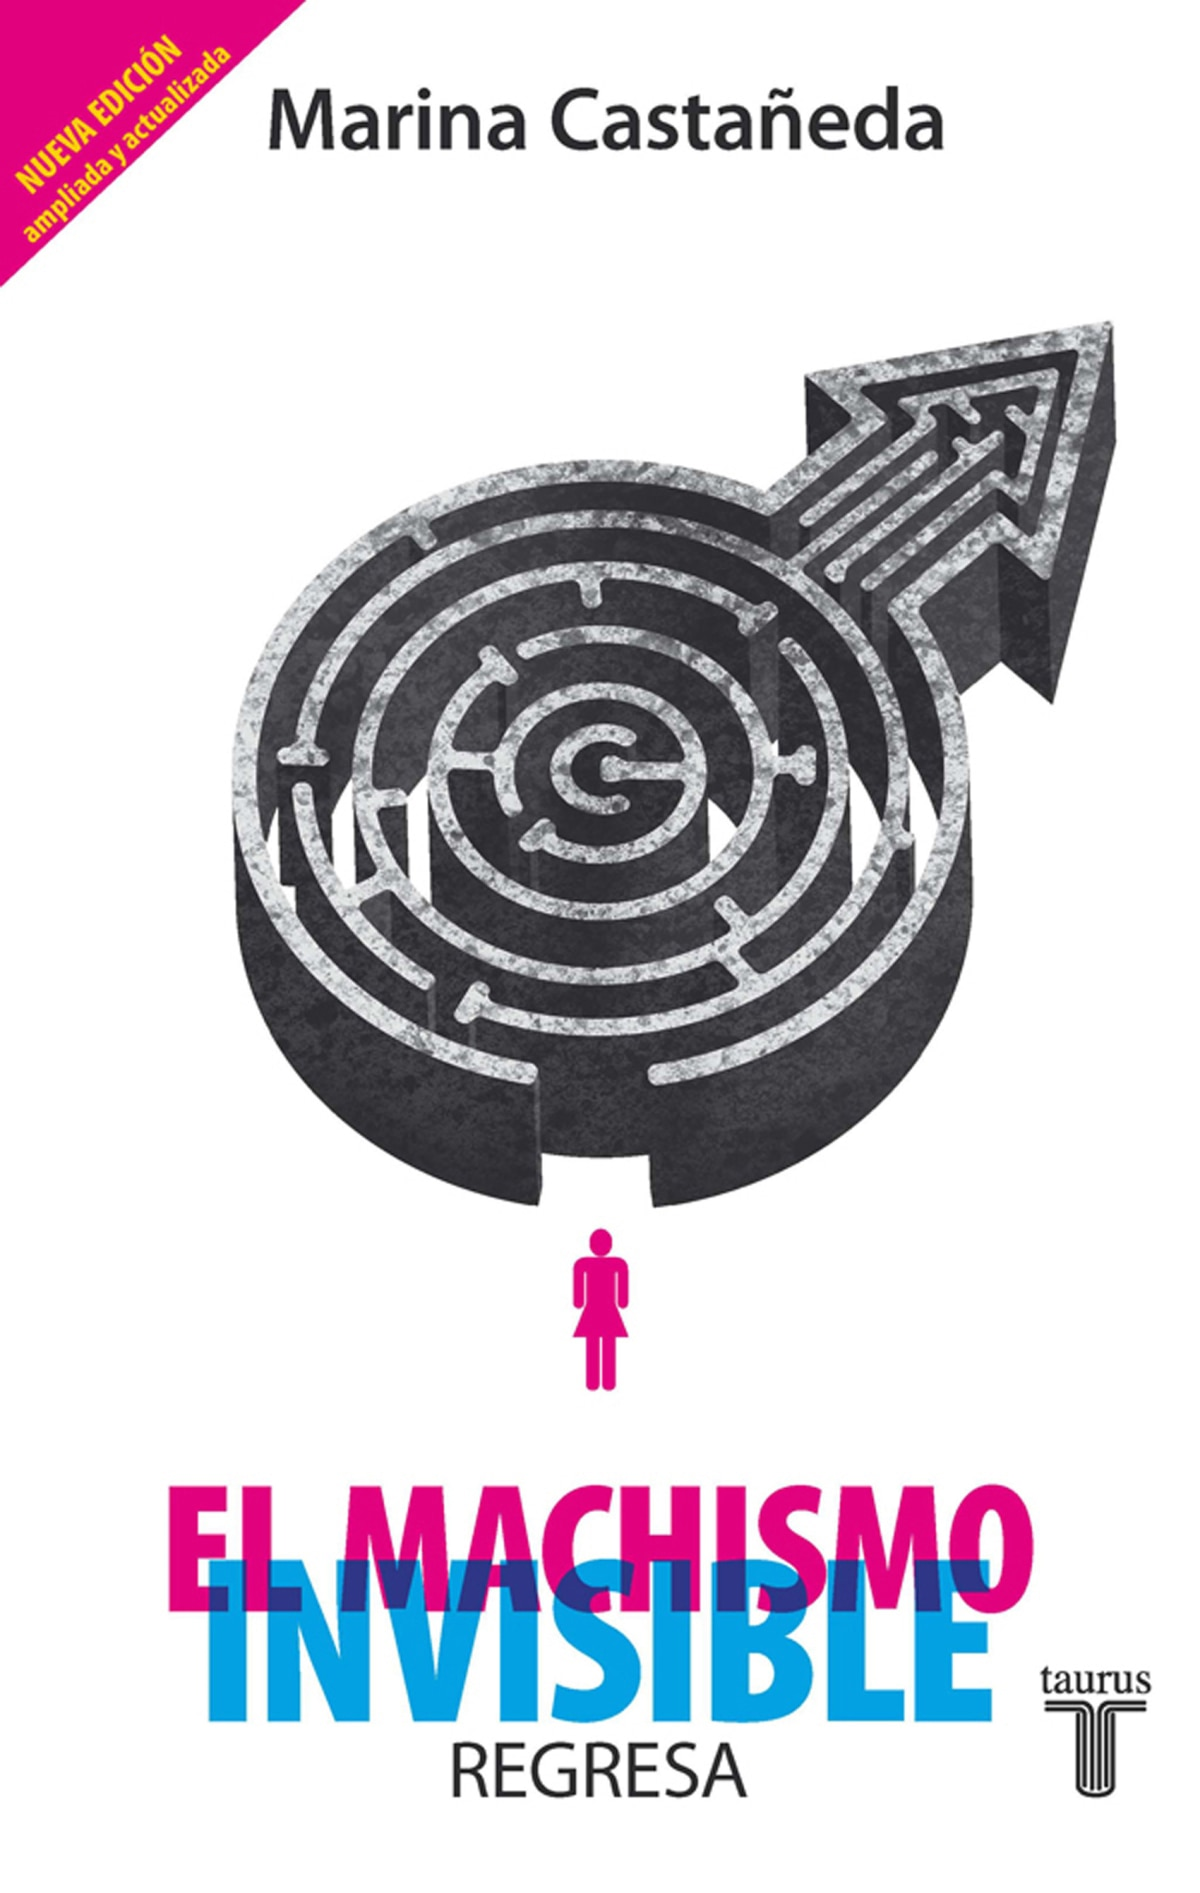 El machismo invisible regresa